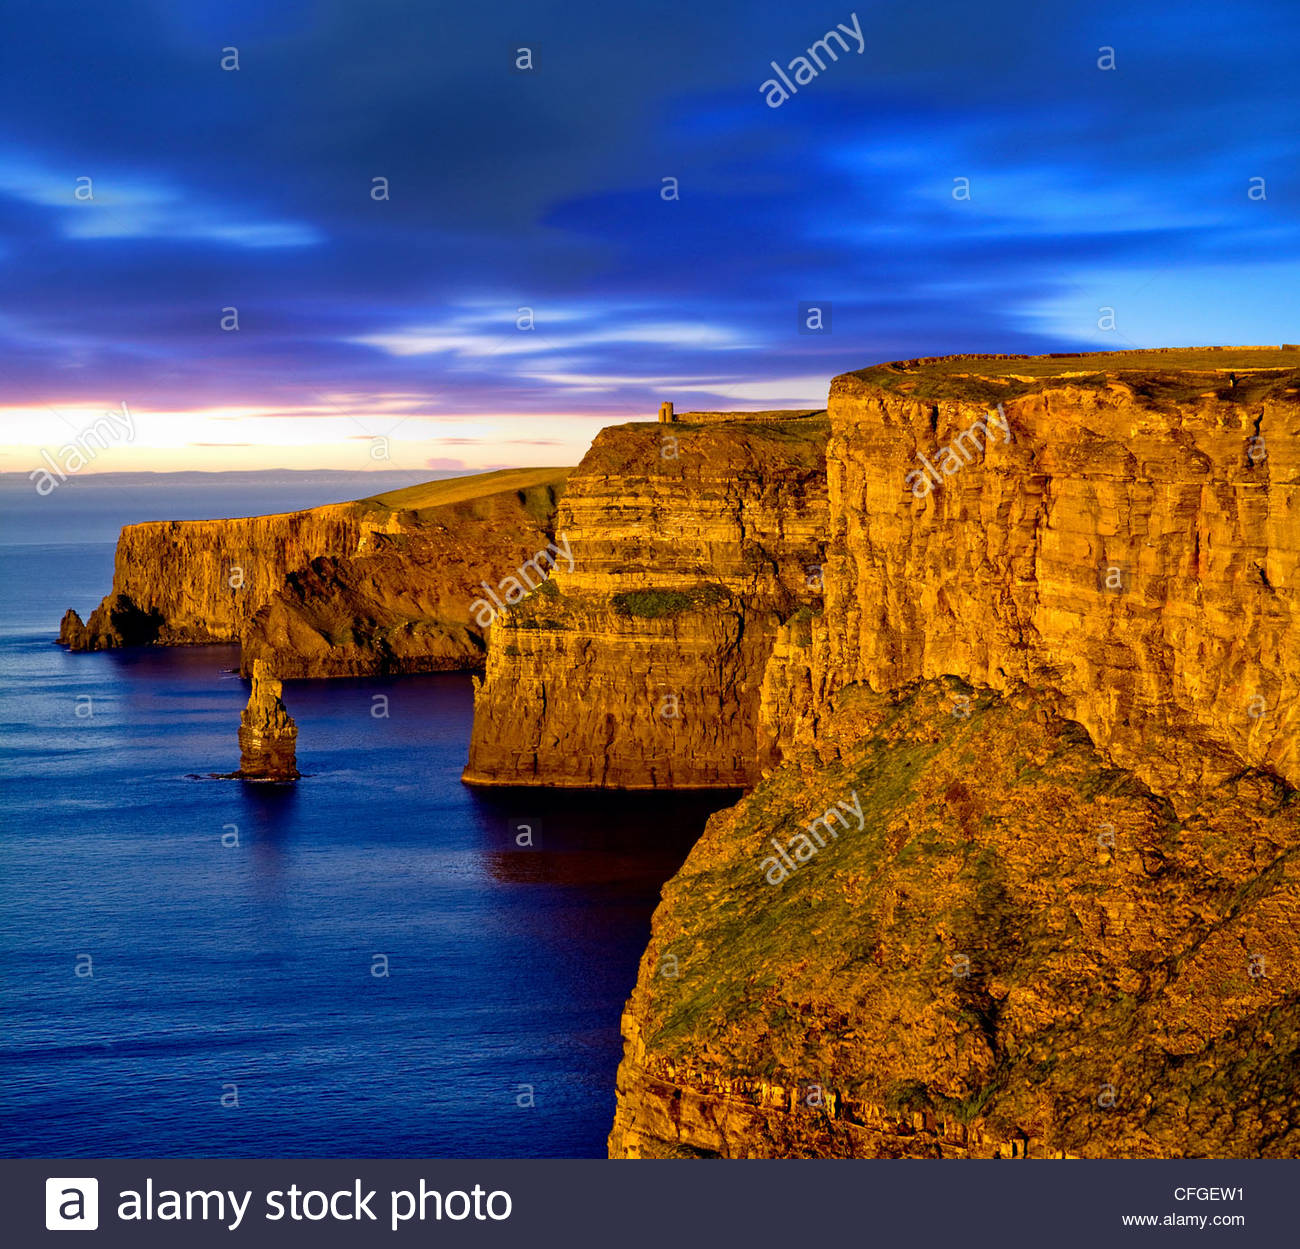 Cliffs of Moher on the West Coast of Ireland - Stock Image